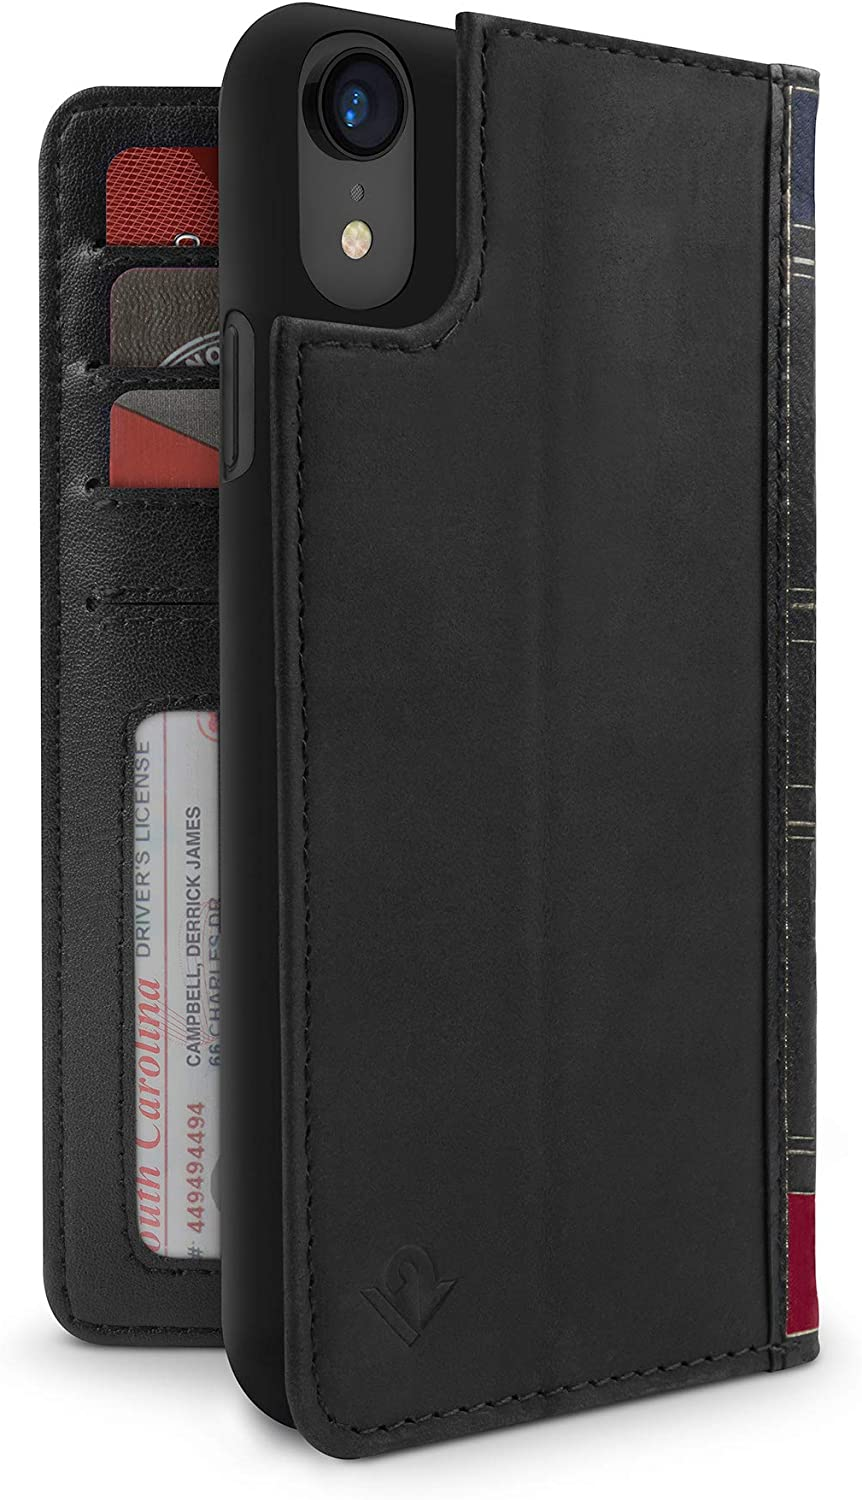 Twelve South BookBook for iPhone XR | 3-in-1 Leather Wallet case, Display Stand and Removable Shell (Black)